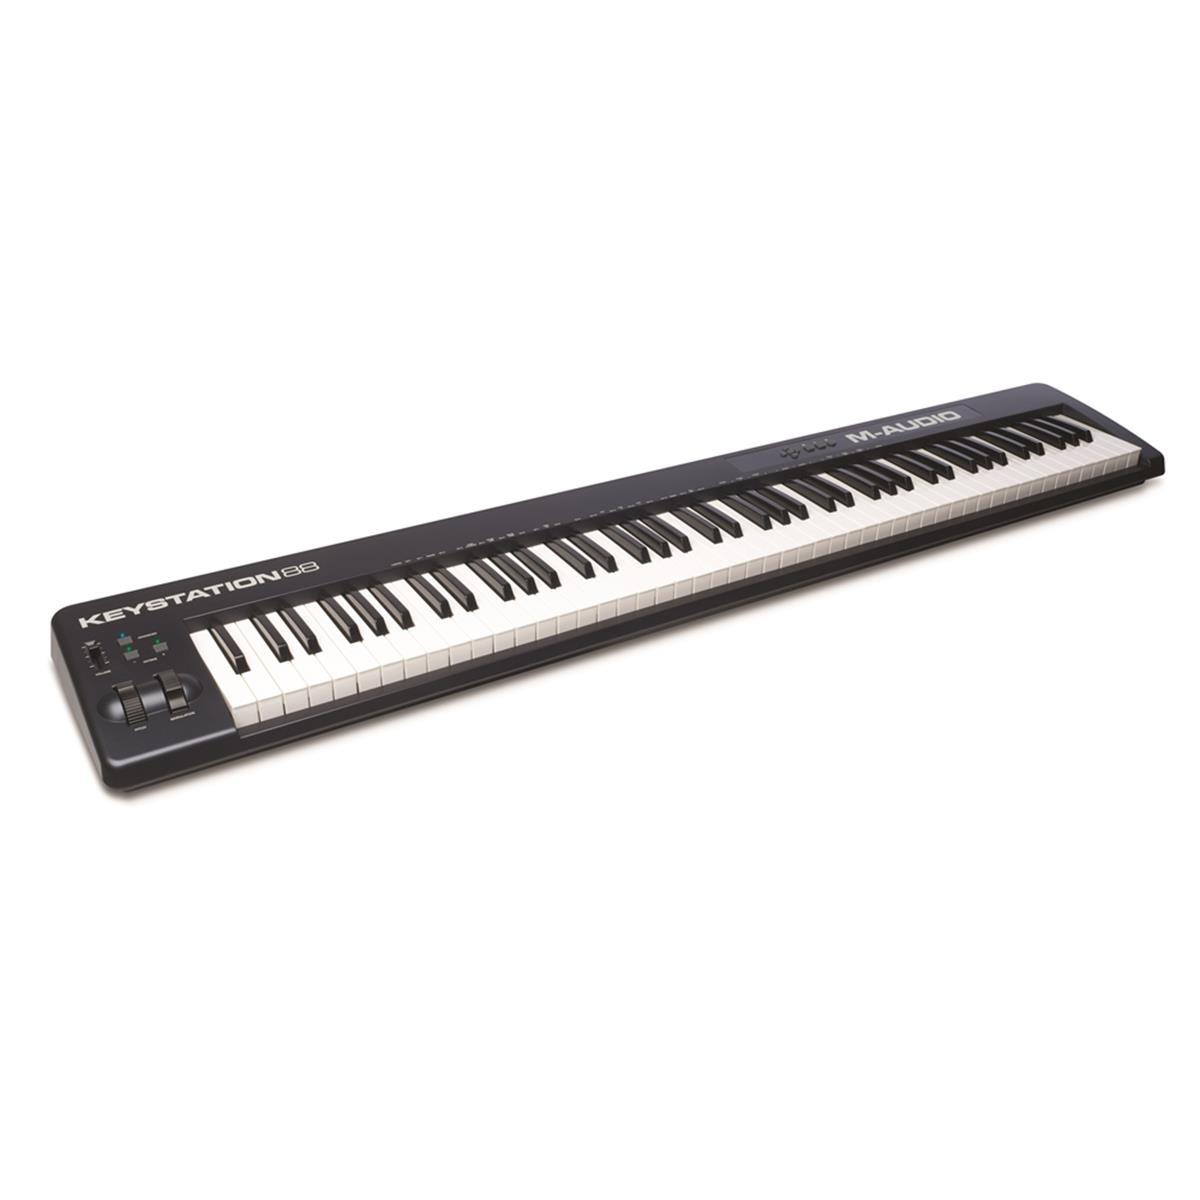 M-AUDIO-KEYSTATION-88-2ND-GEN-NUOVO-MODELLO-sku-12755